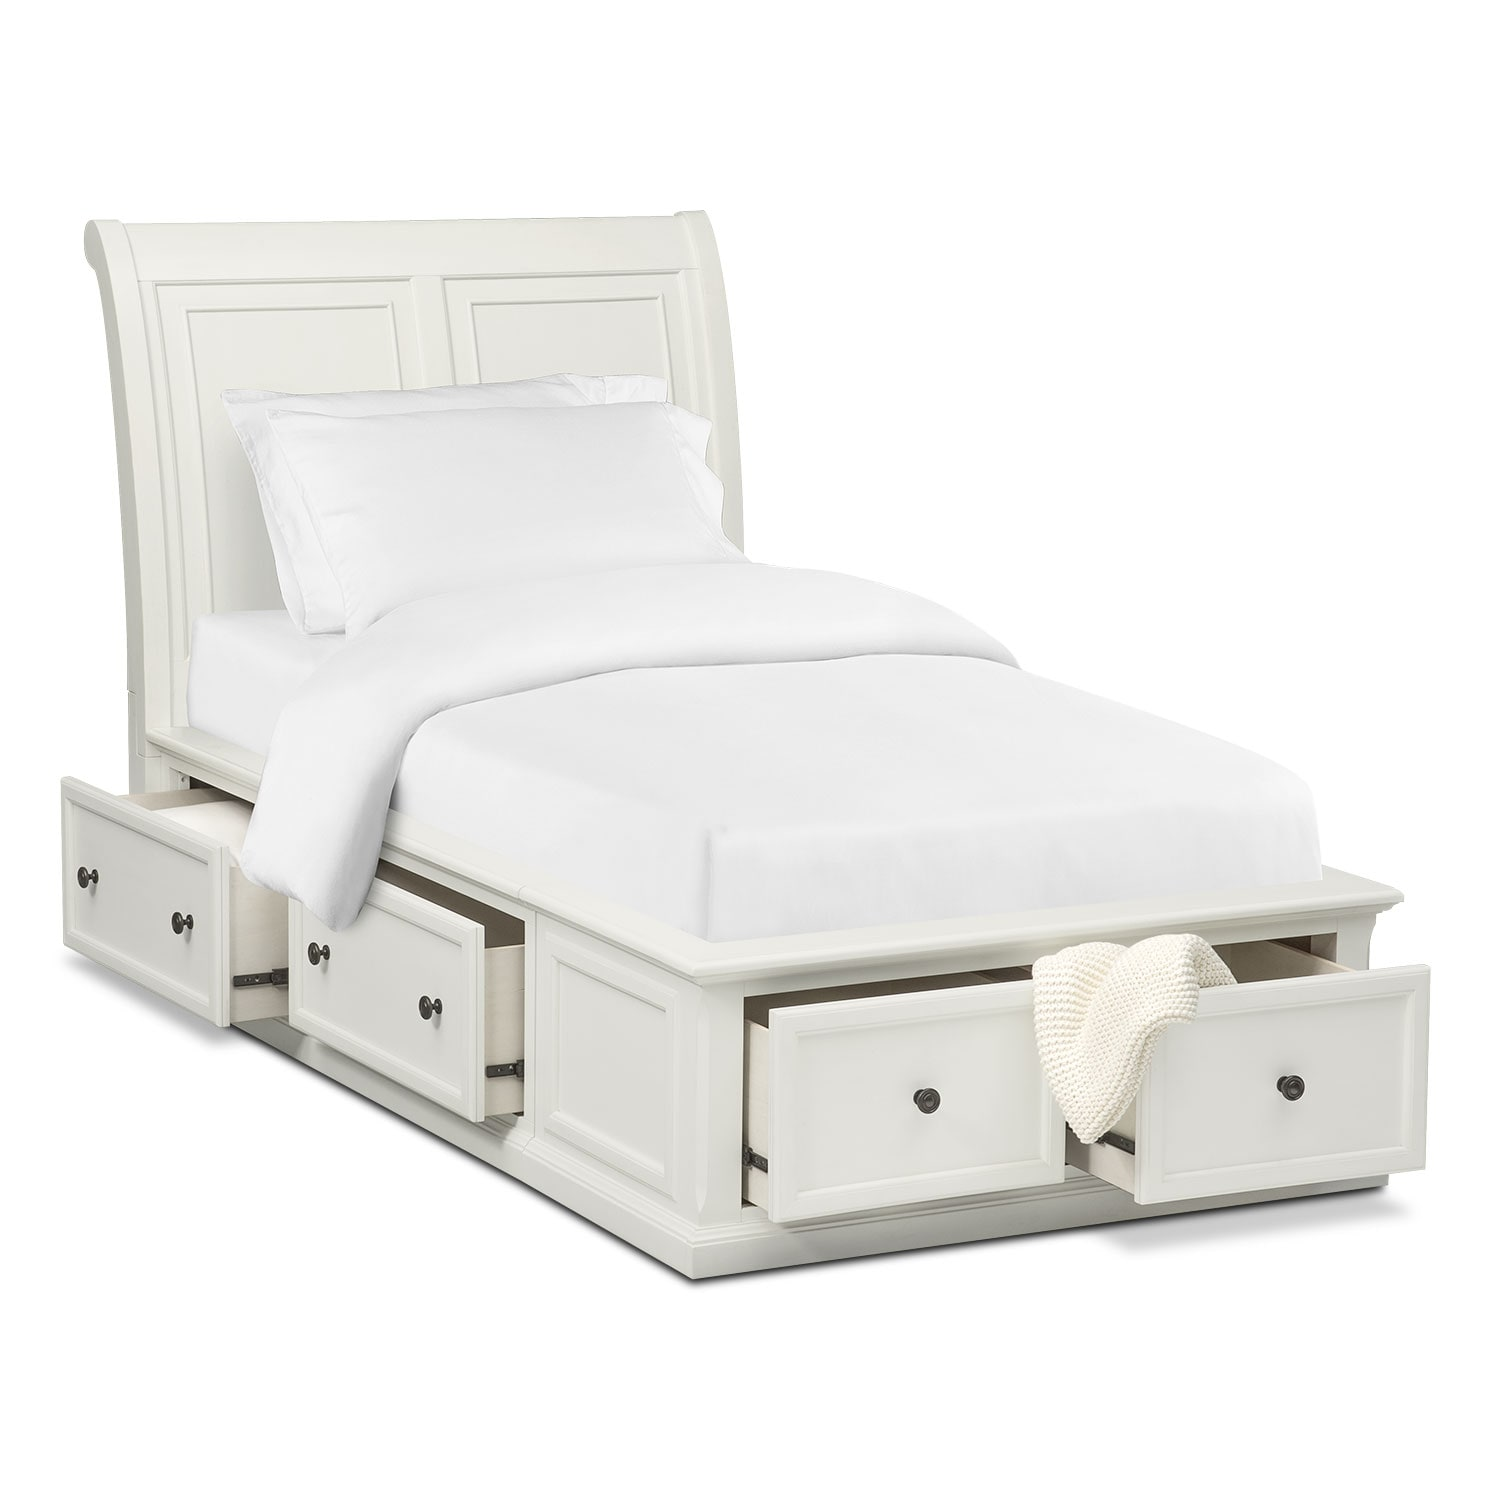 Bedroom Furniture - Hanover Youth Full Sleigh Bed with Storage - White